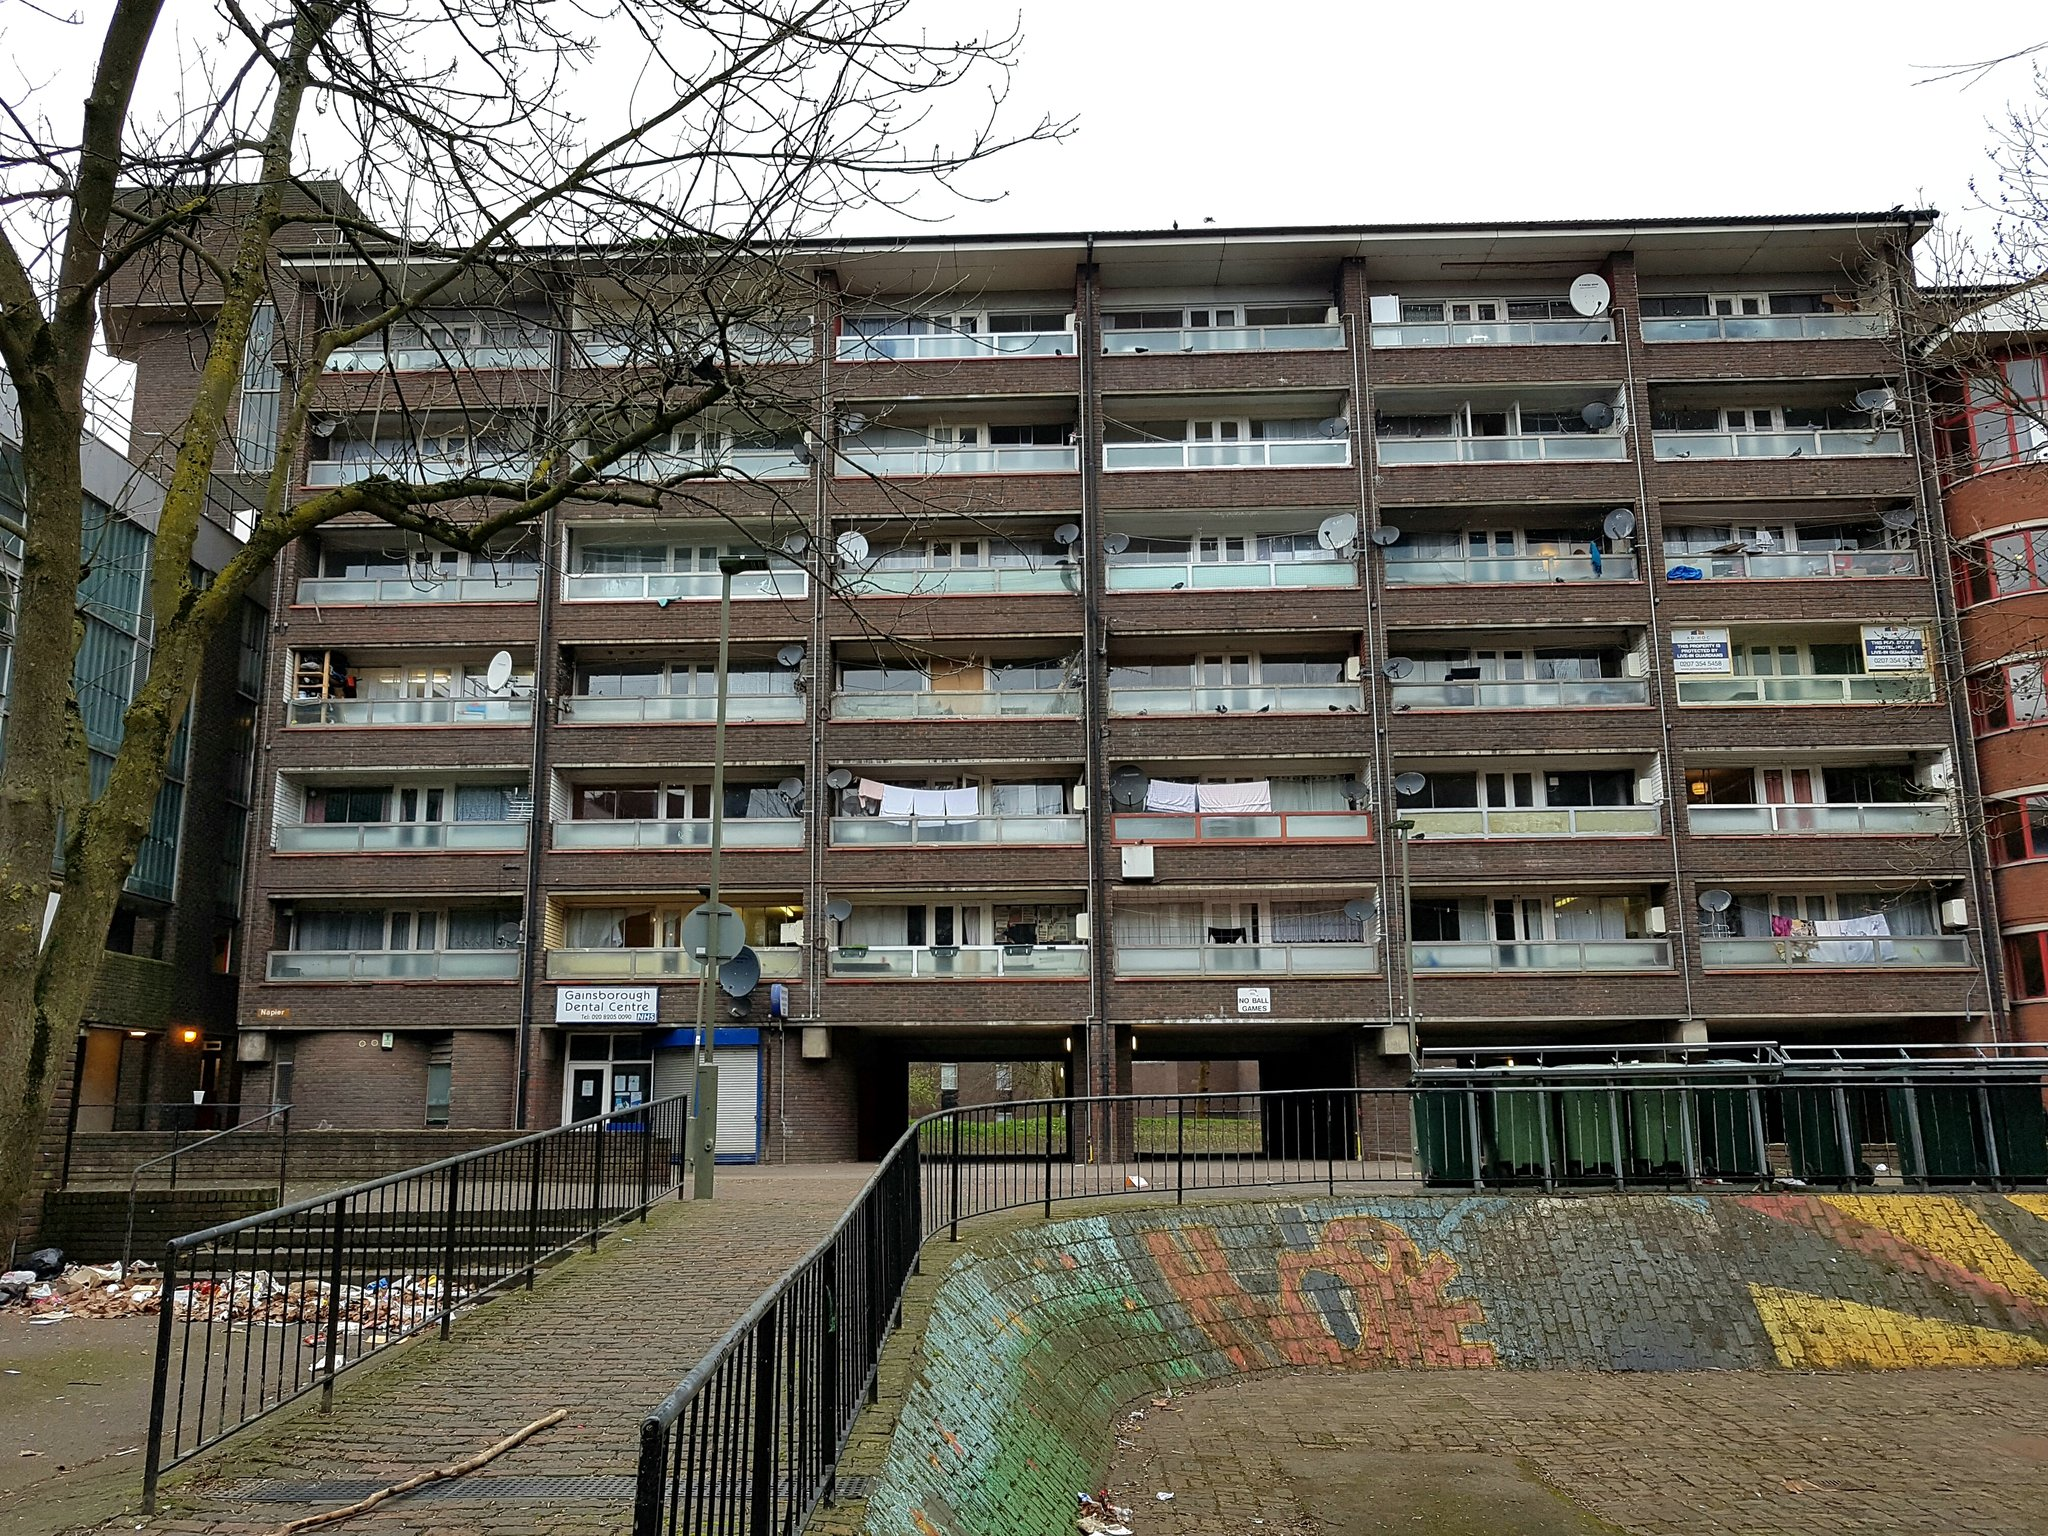 Grahame Park estate